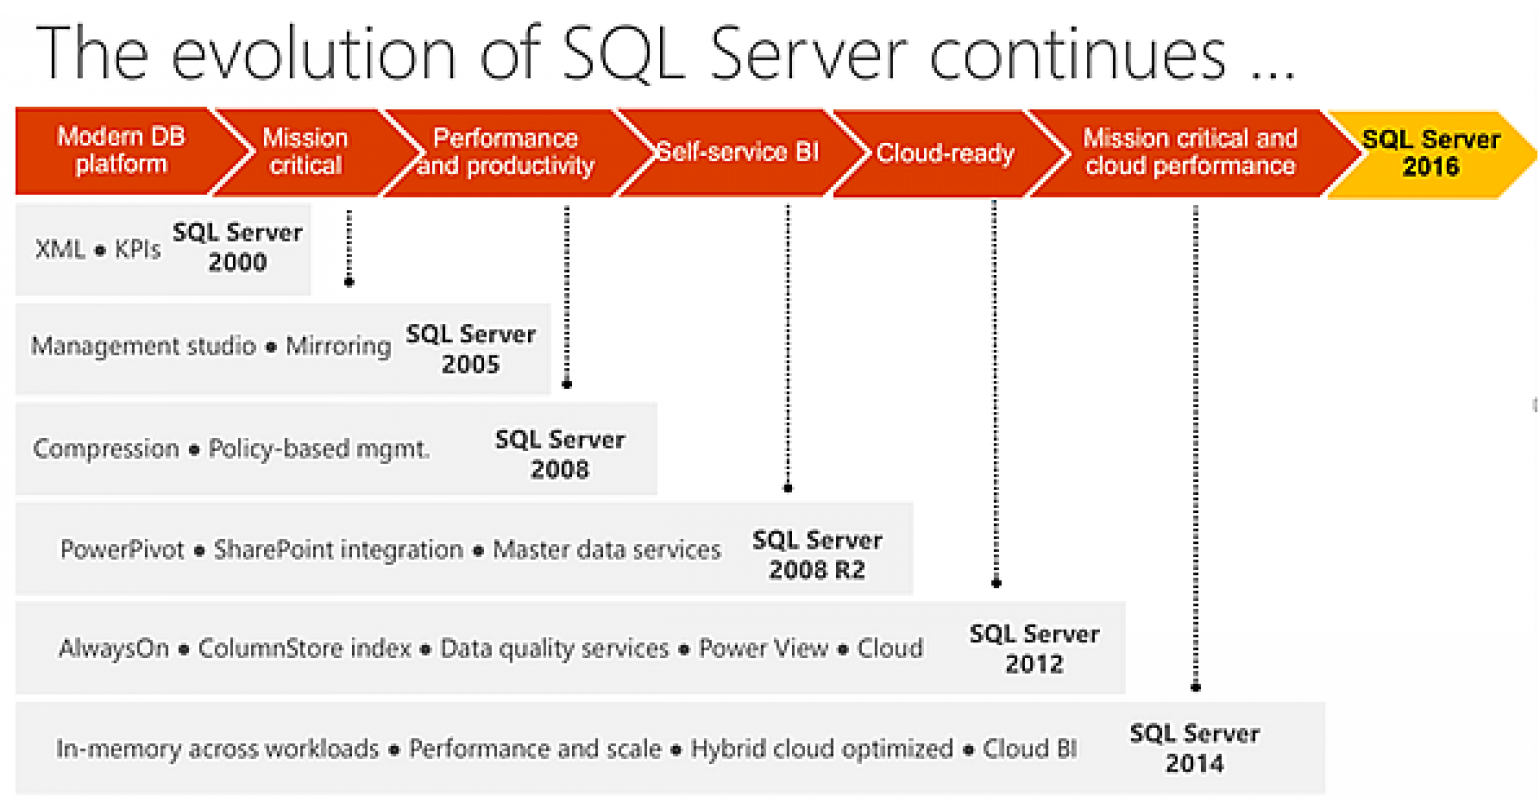 What is Coming in SQL Server 2016 for Business Intelligence